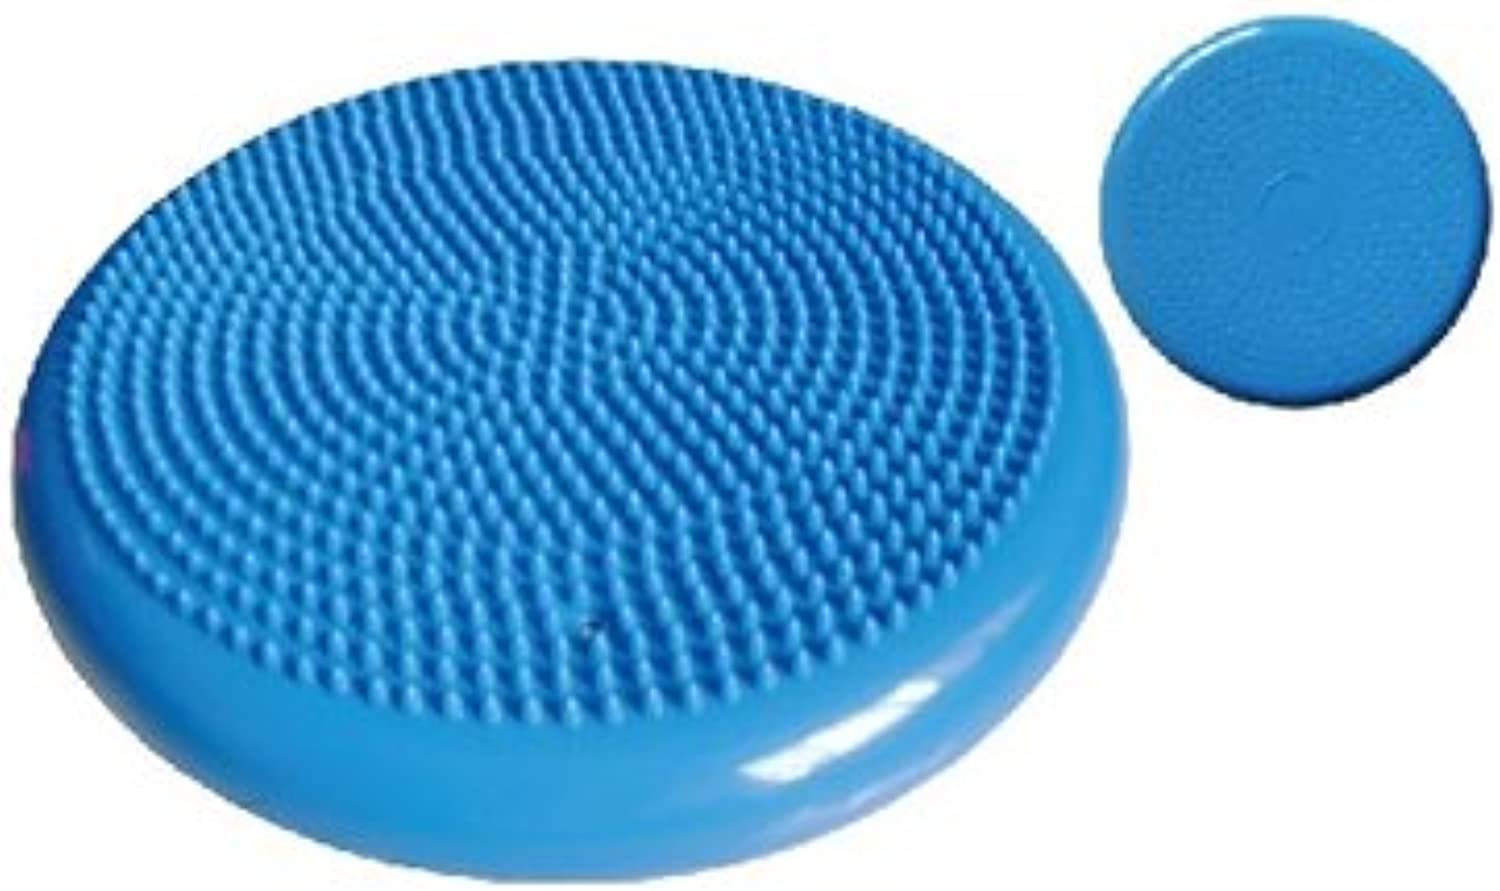 Therapist's Choice Inflated Air-Filled Stability Balance Disc-blueee